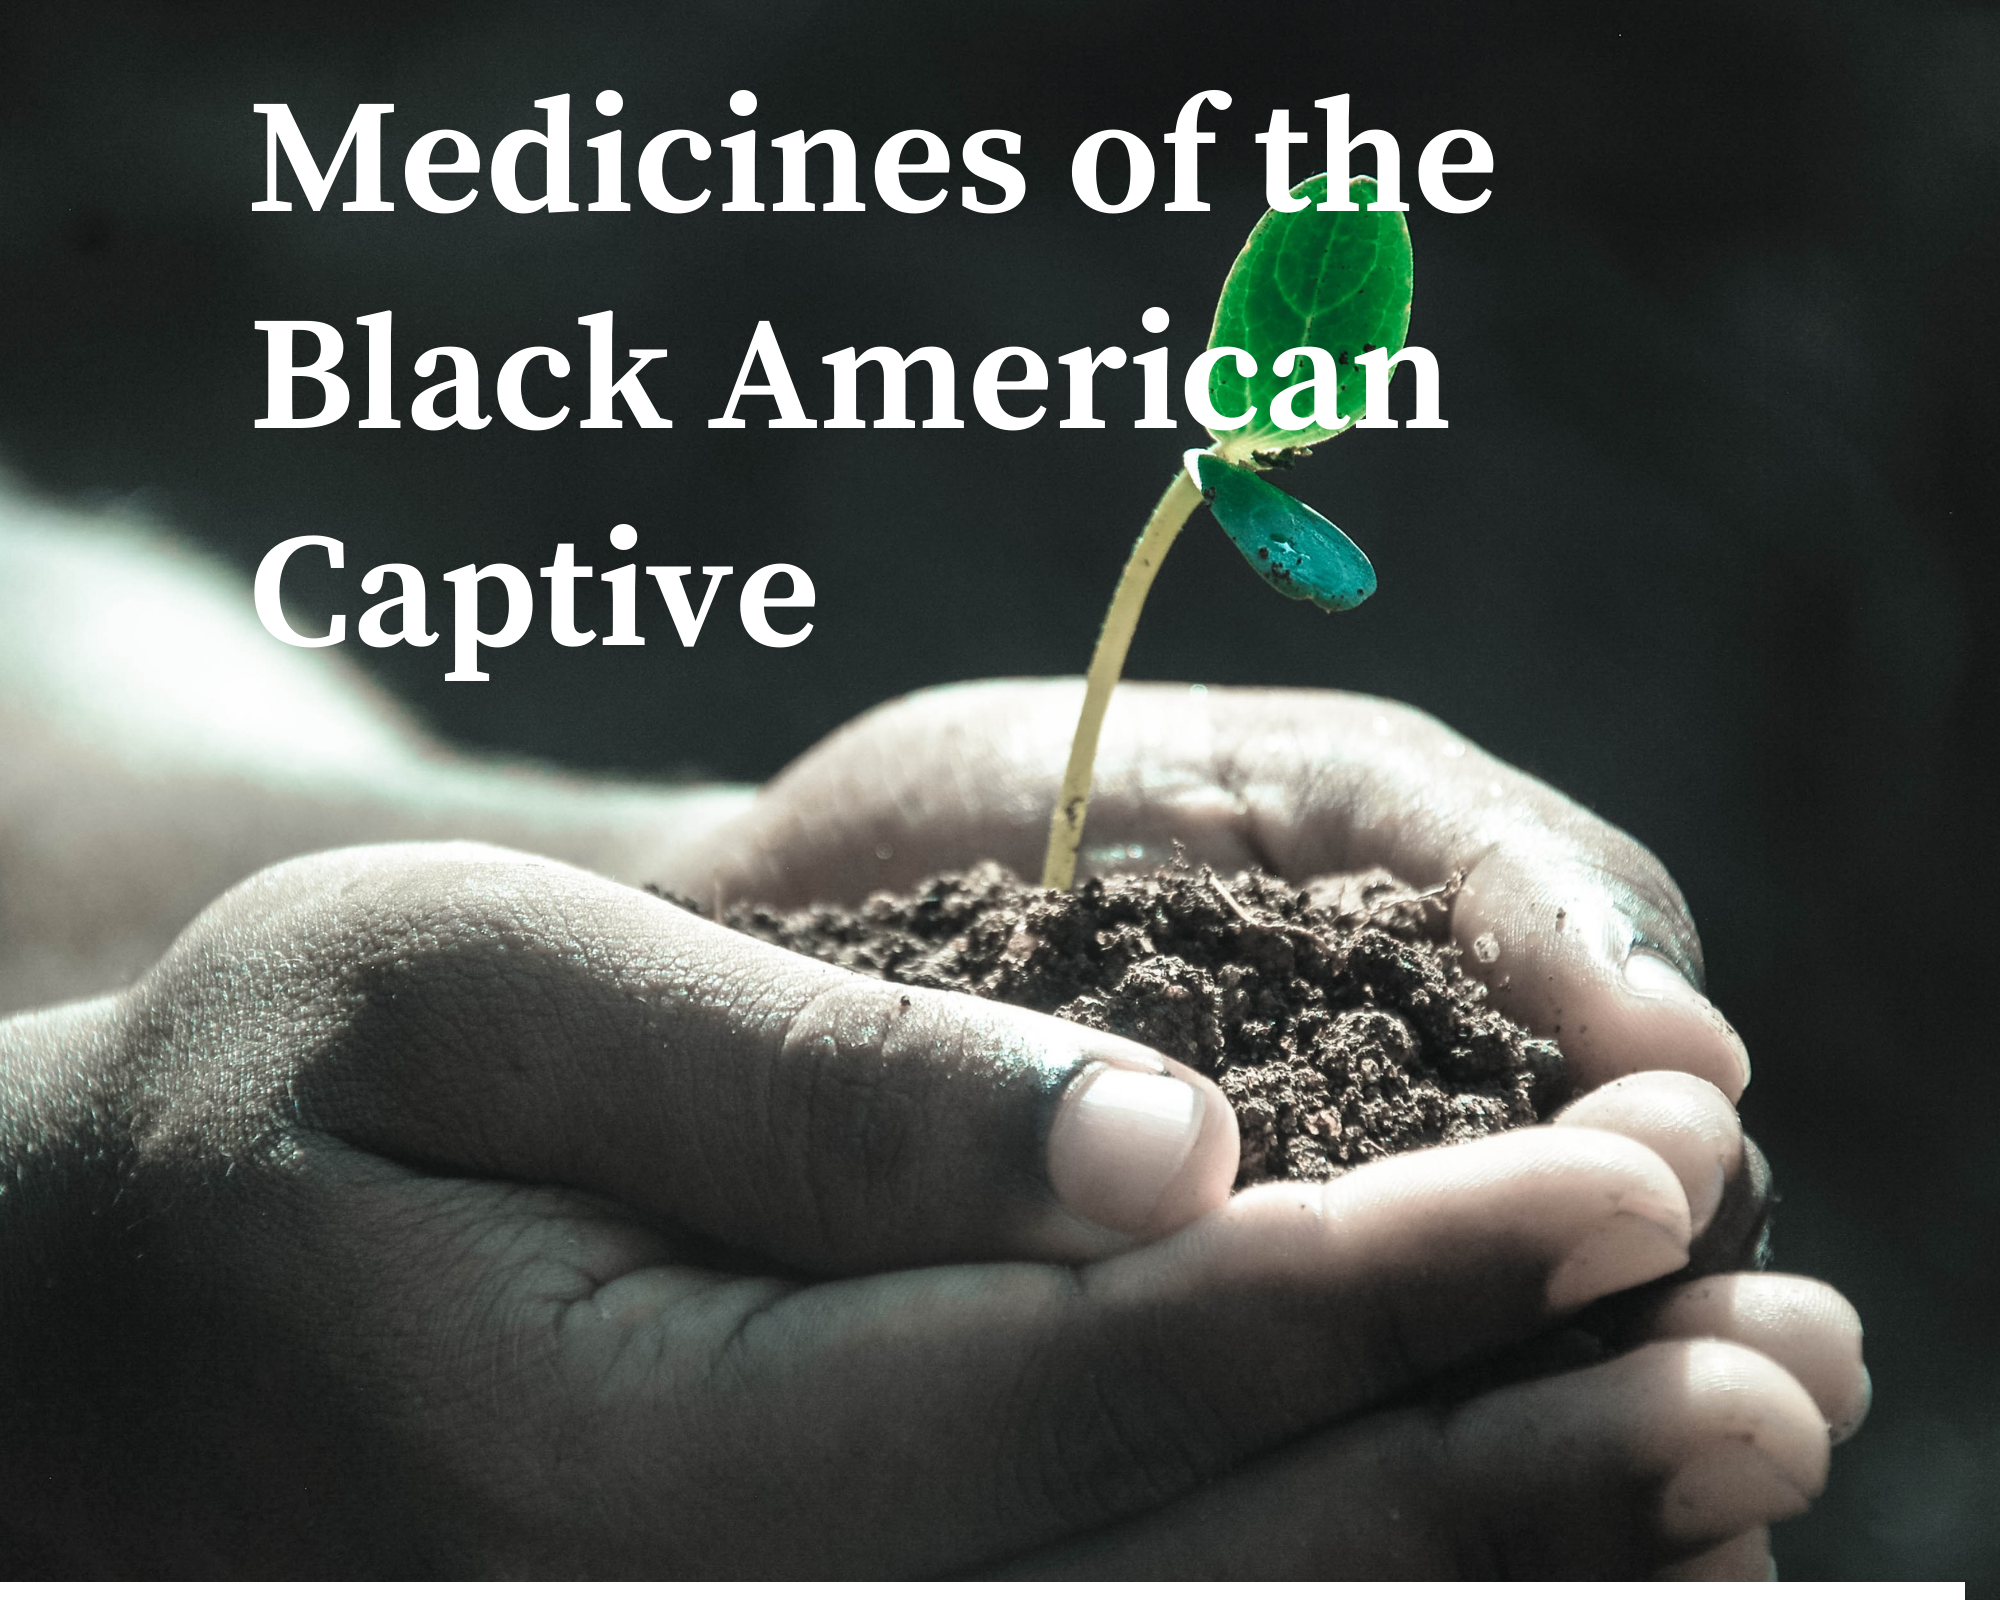 Medicines of the Black American Captive with Community Herbalist Monticue Connally